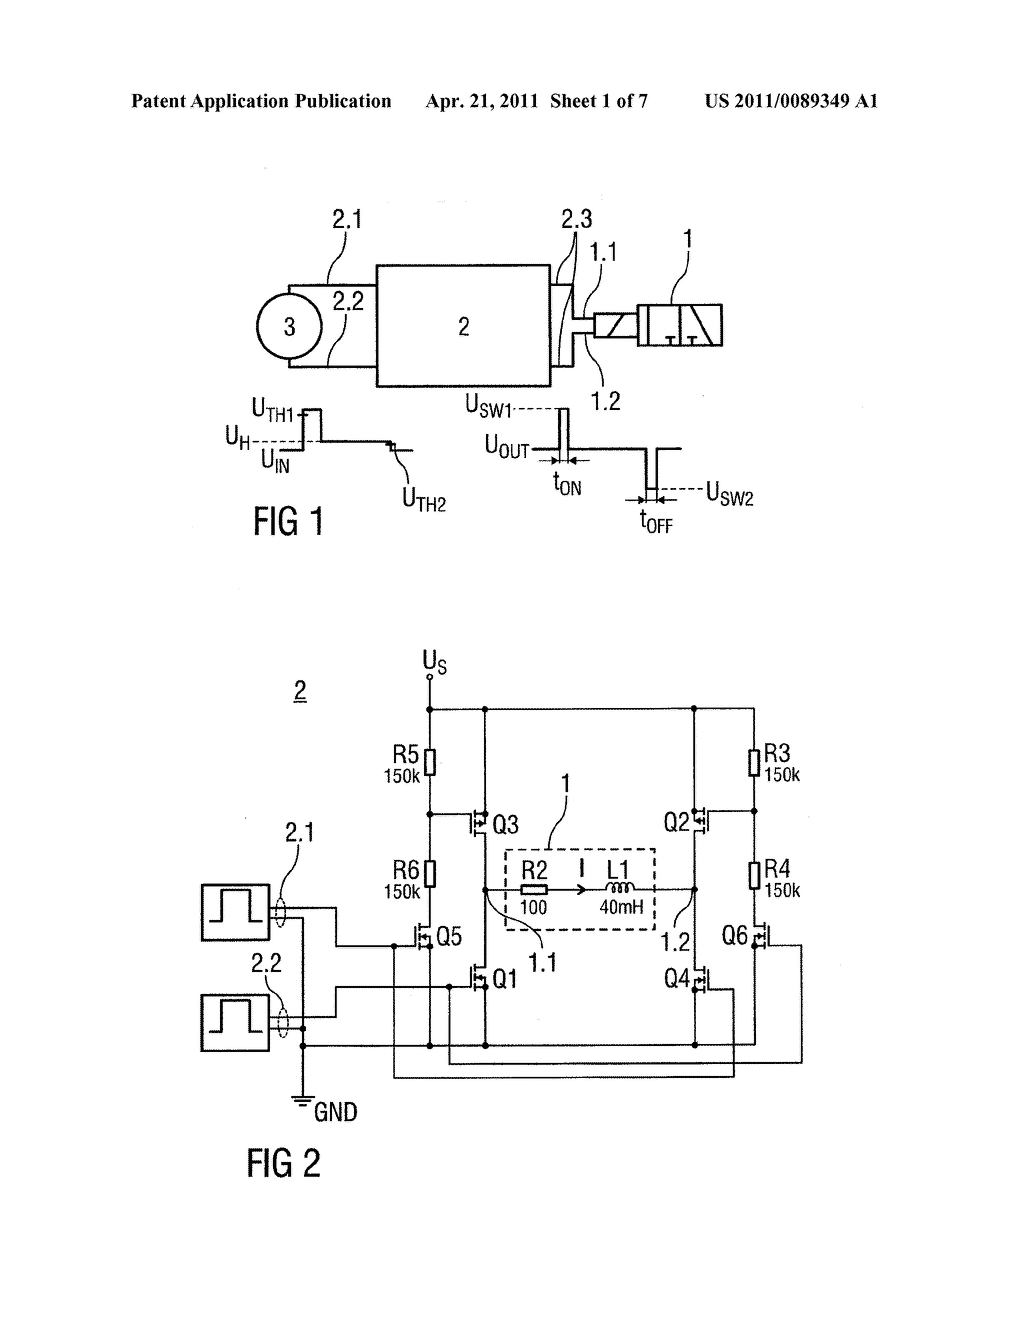 Electronic Adapter For Controlling A Bistable Valve Diagram Circuit Schematic And Image 02